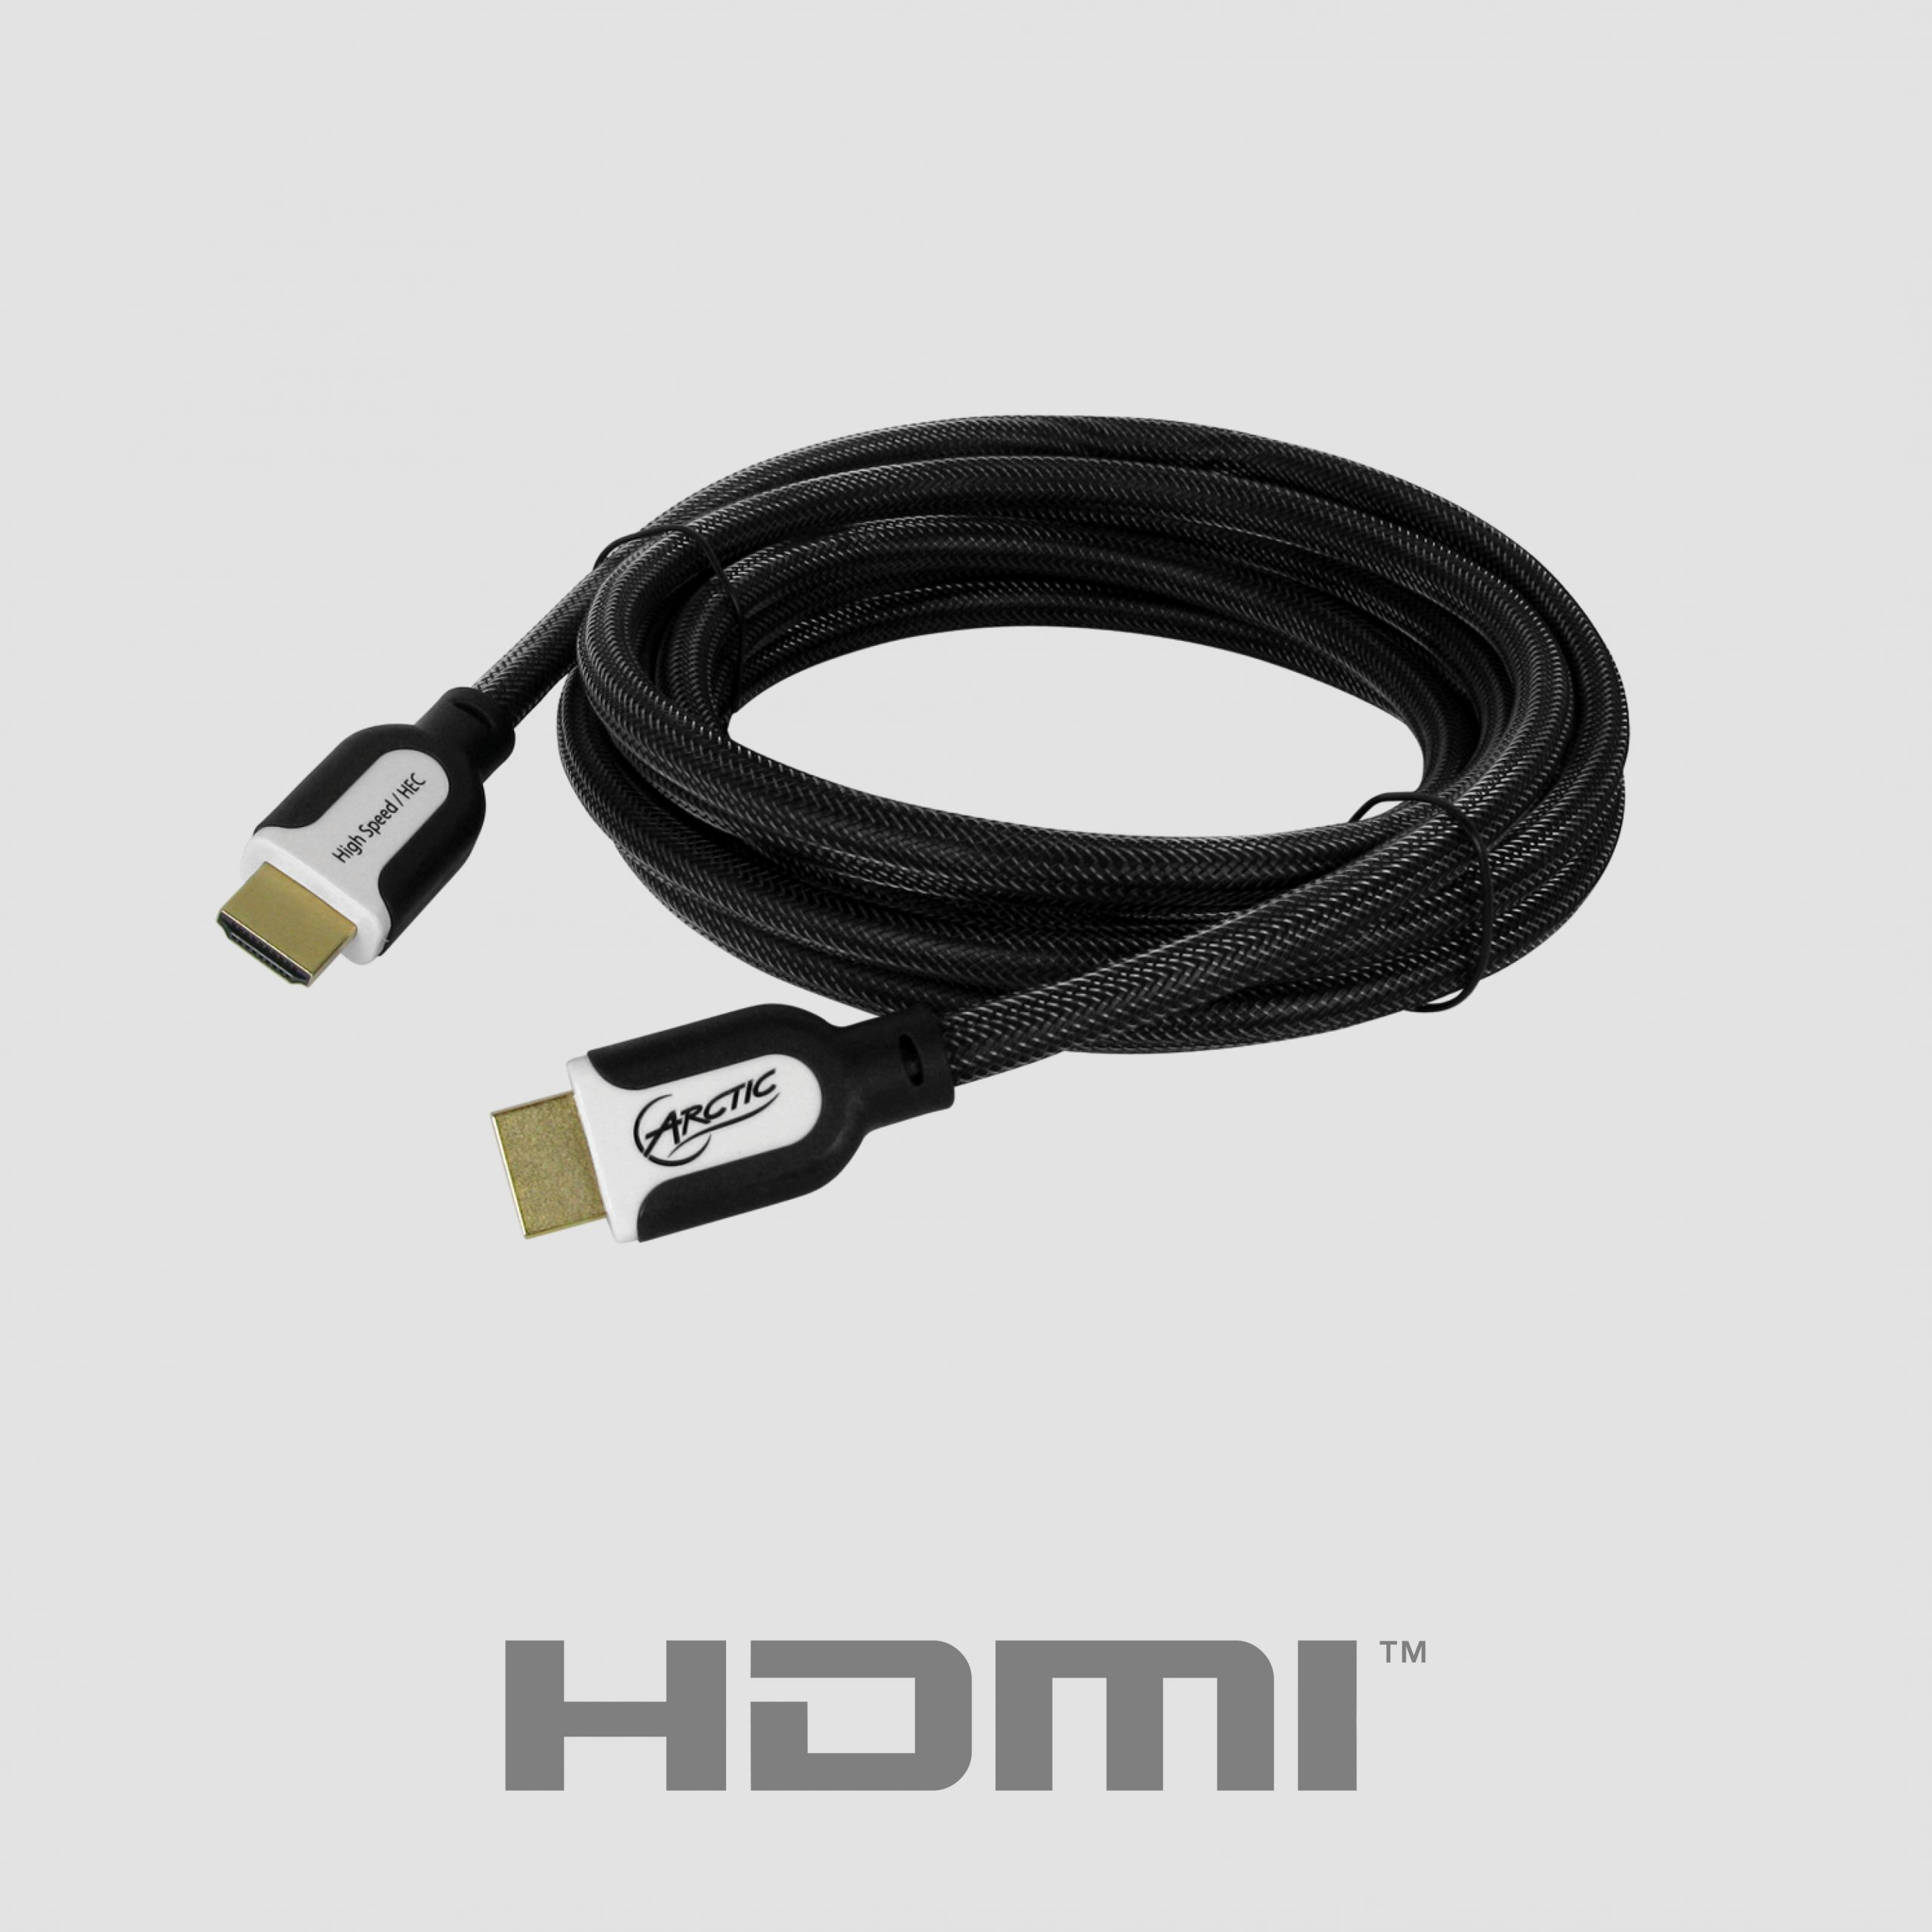 Stream using an HDMI cable